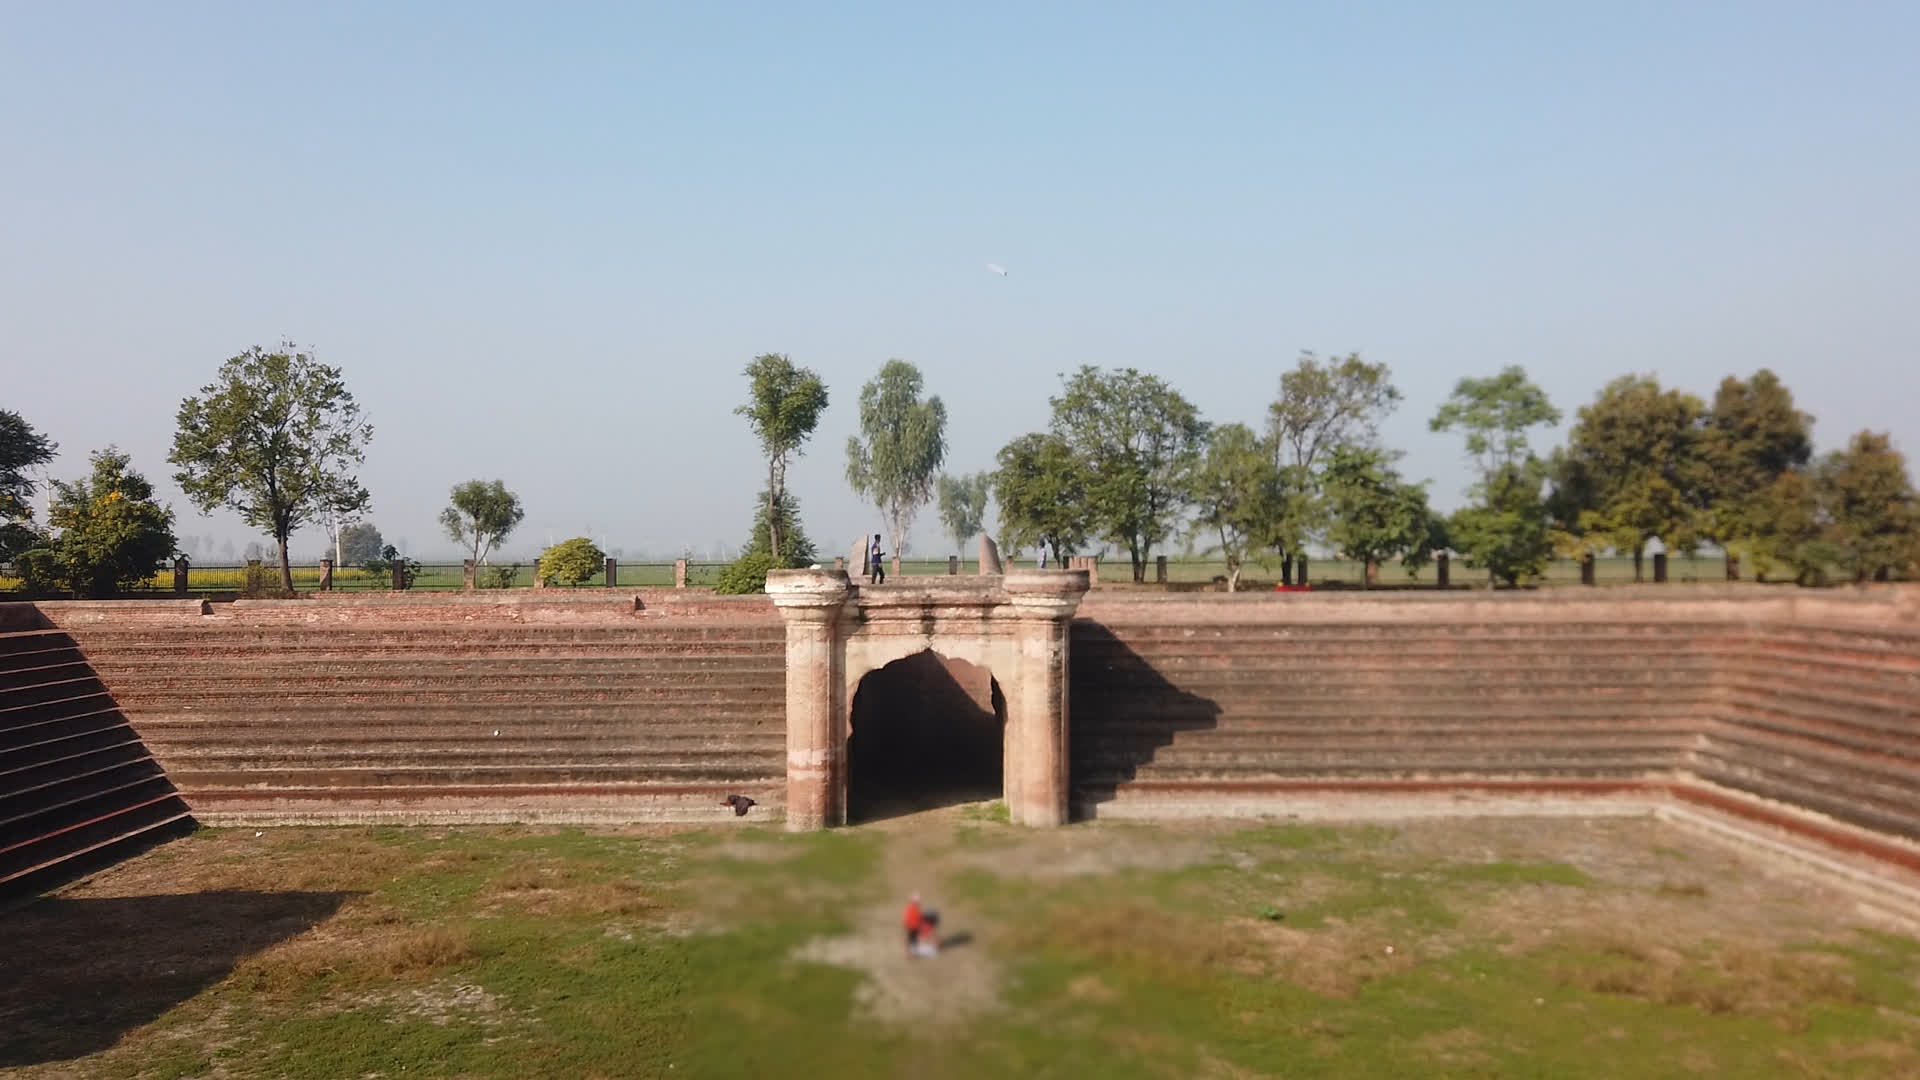 The Historical Site of Pul Kanjri